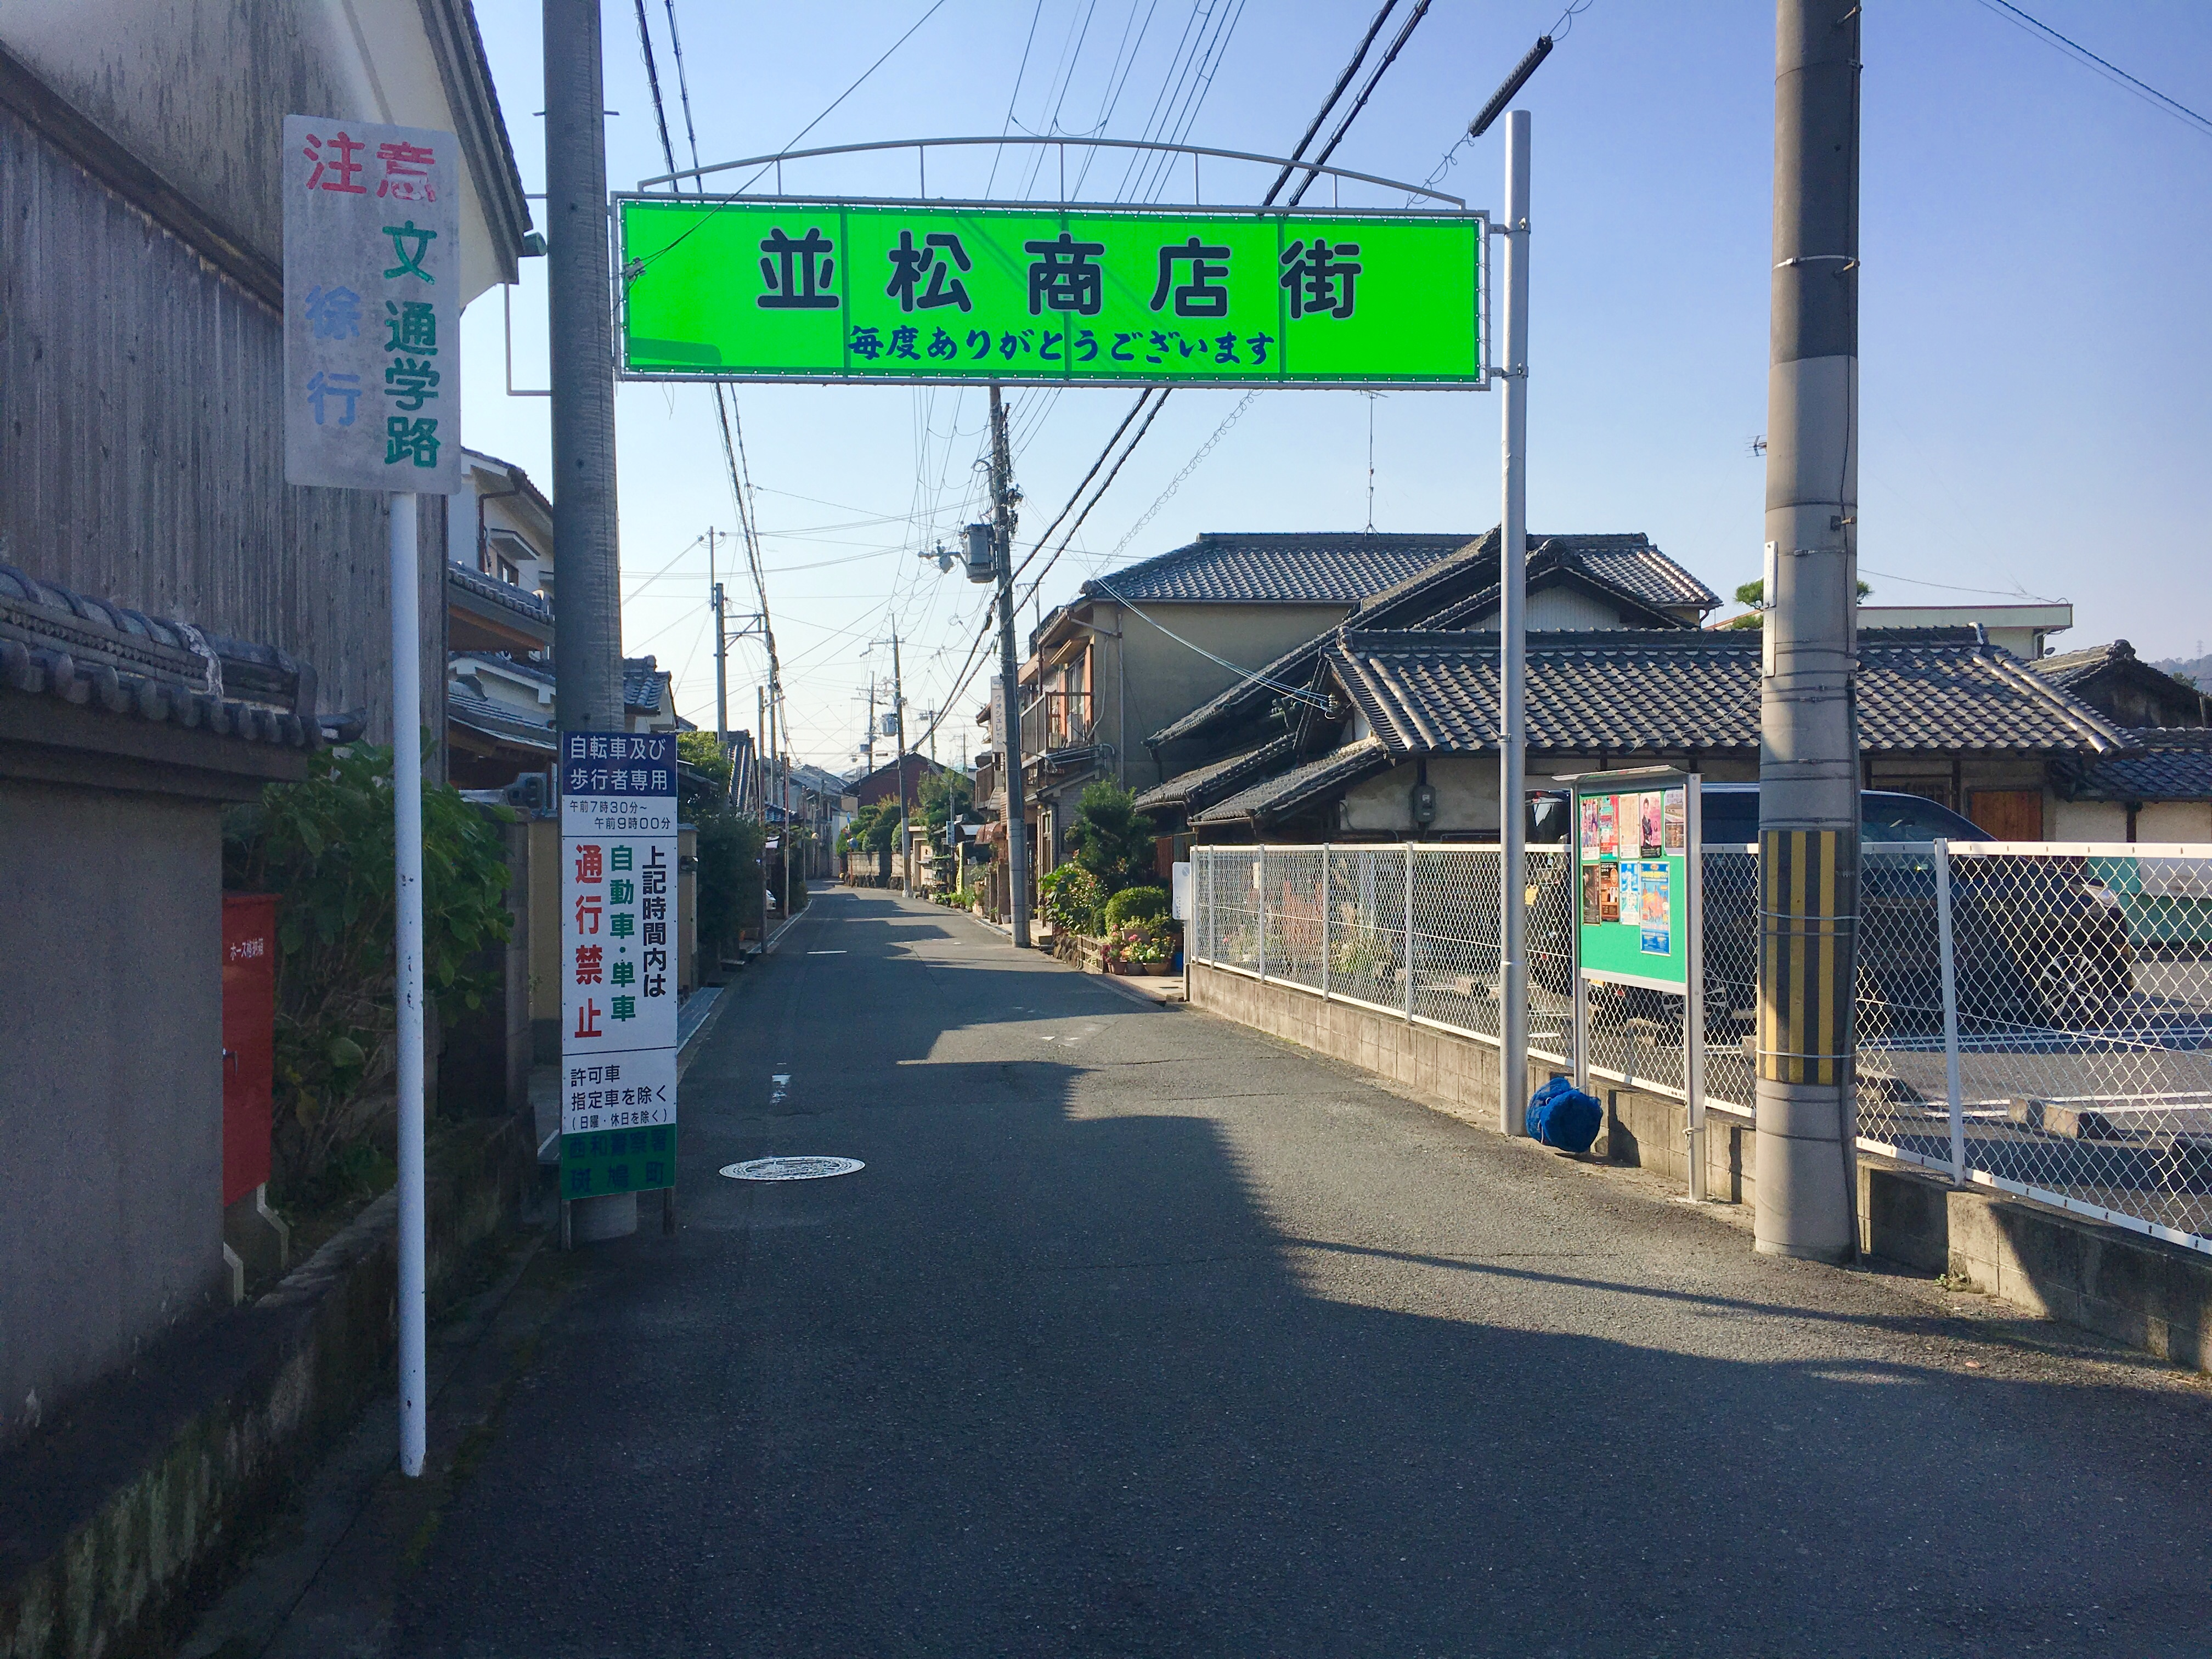 Namimatsu Shopping Street with green sign